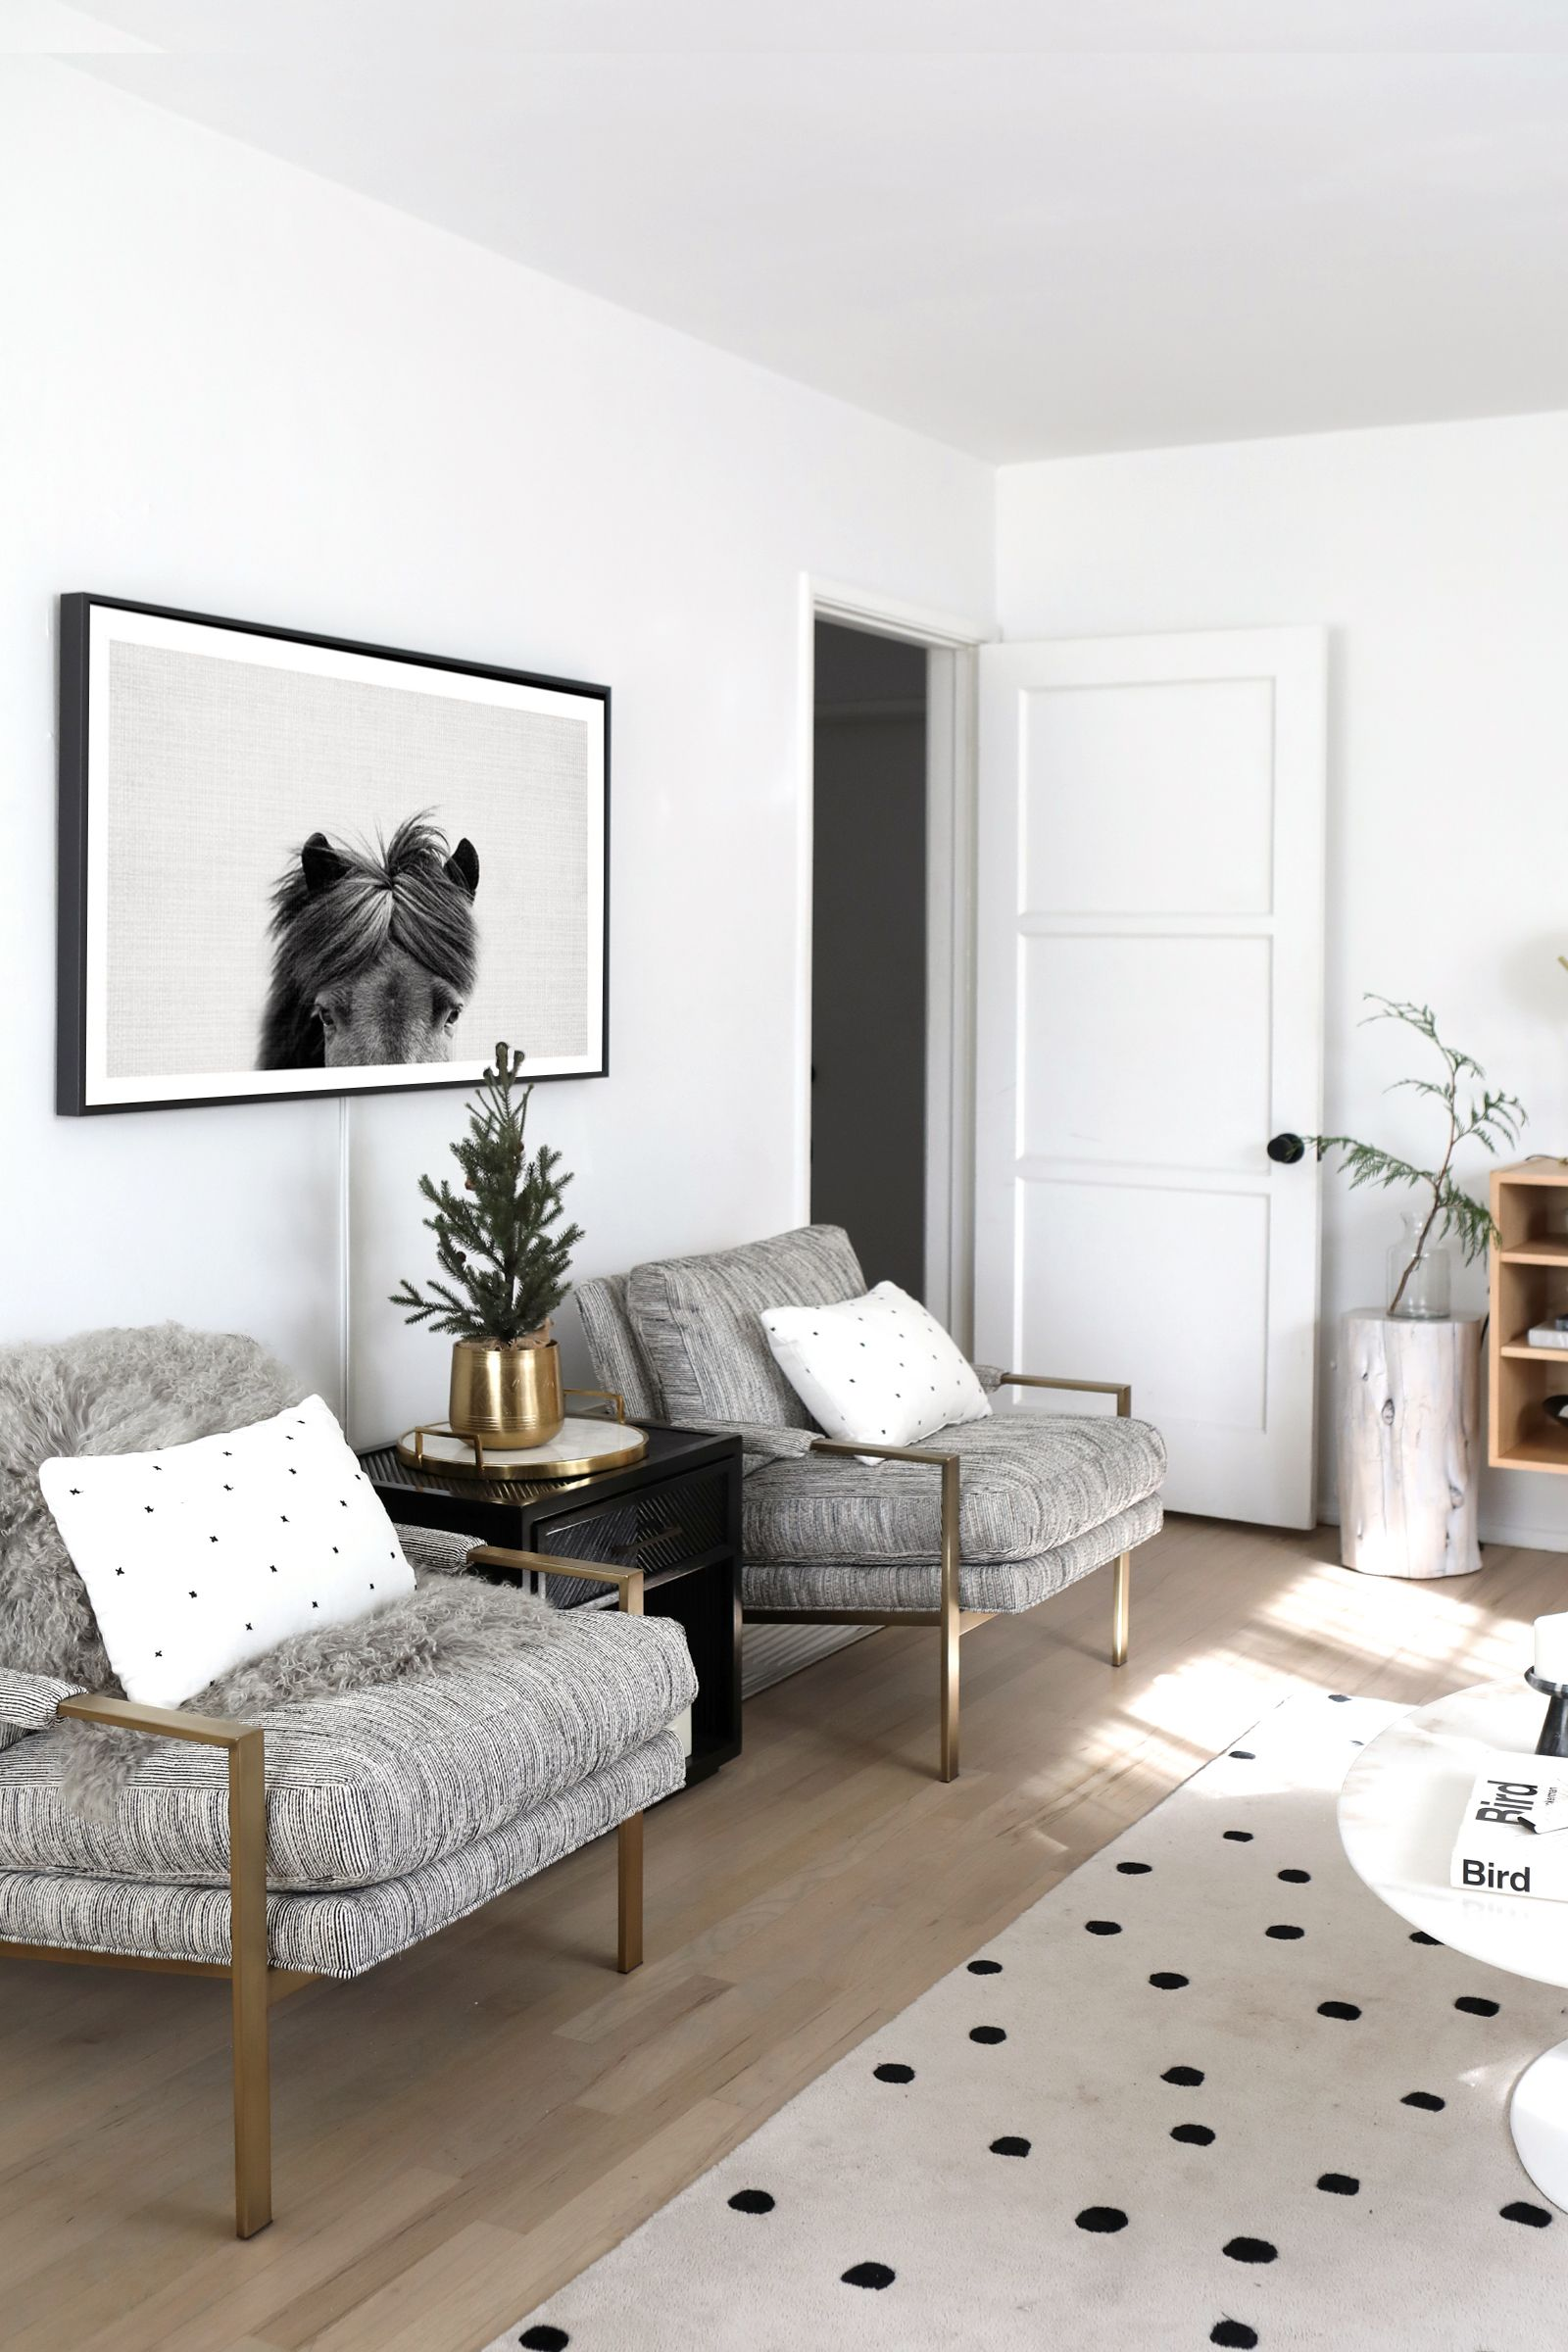 Find out how to create sanctuary at home during the holidays by ...